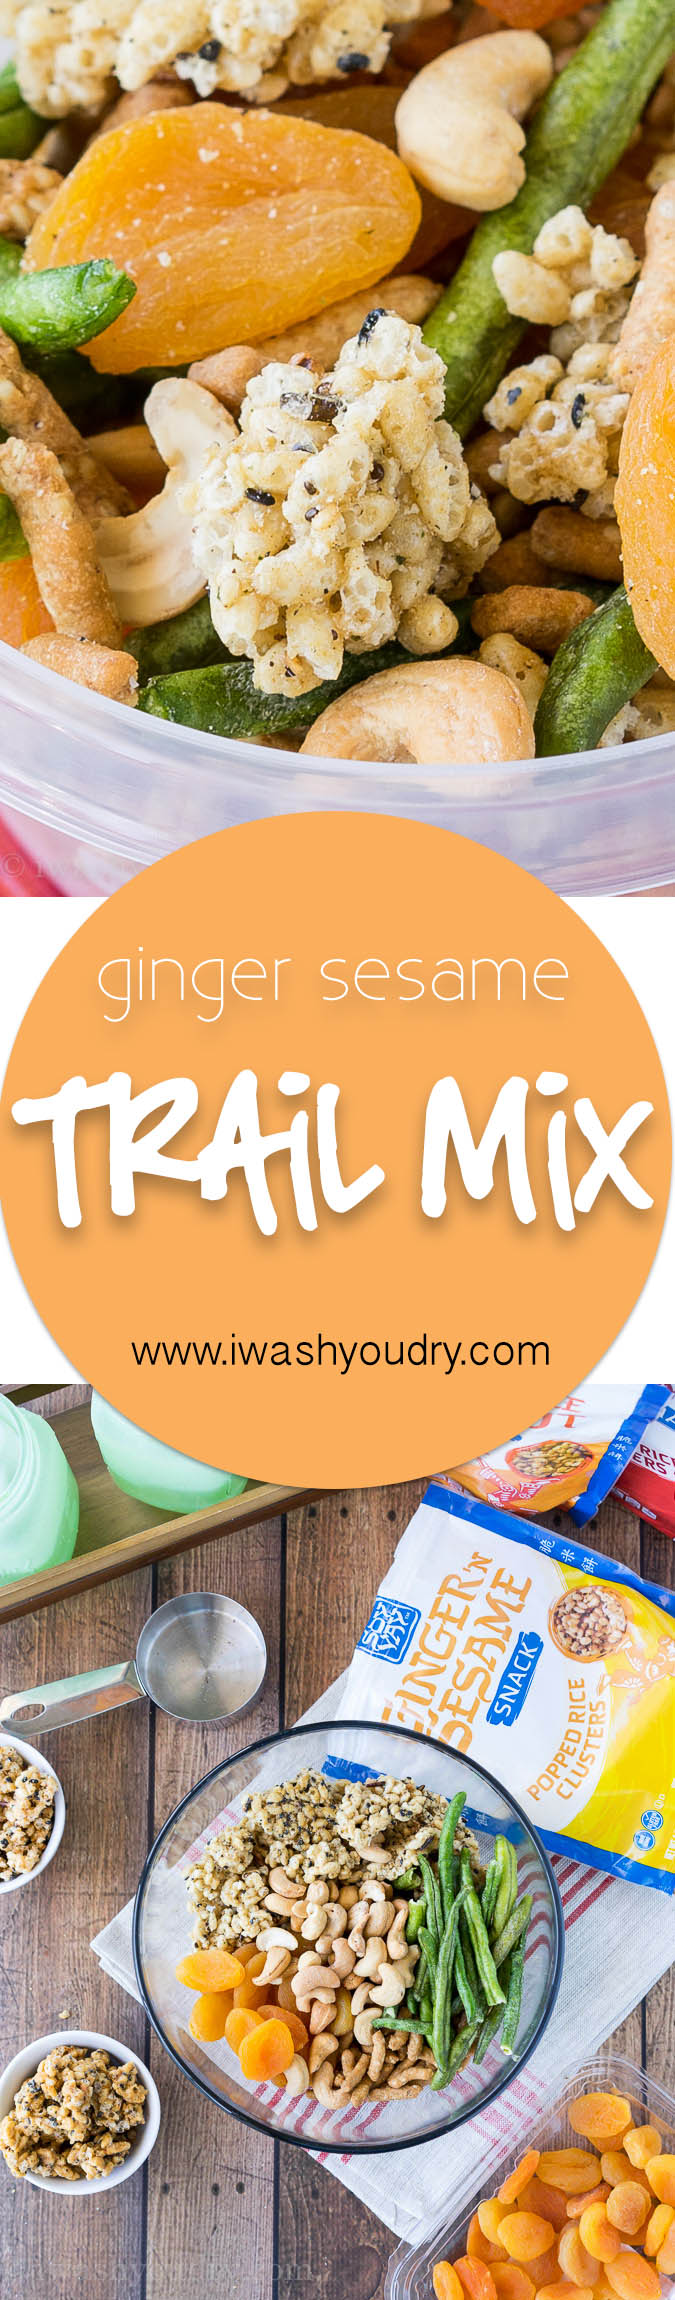 This asian-inspired Ginger Sesame Trail Mix is a fun combination of Soy Vay's newest snack - Popped Rice Clusters along with dried fruits and nuts. Perfect for snacking on the go!